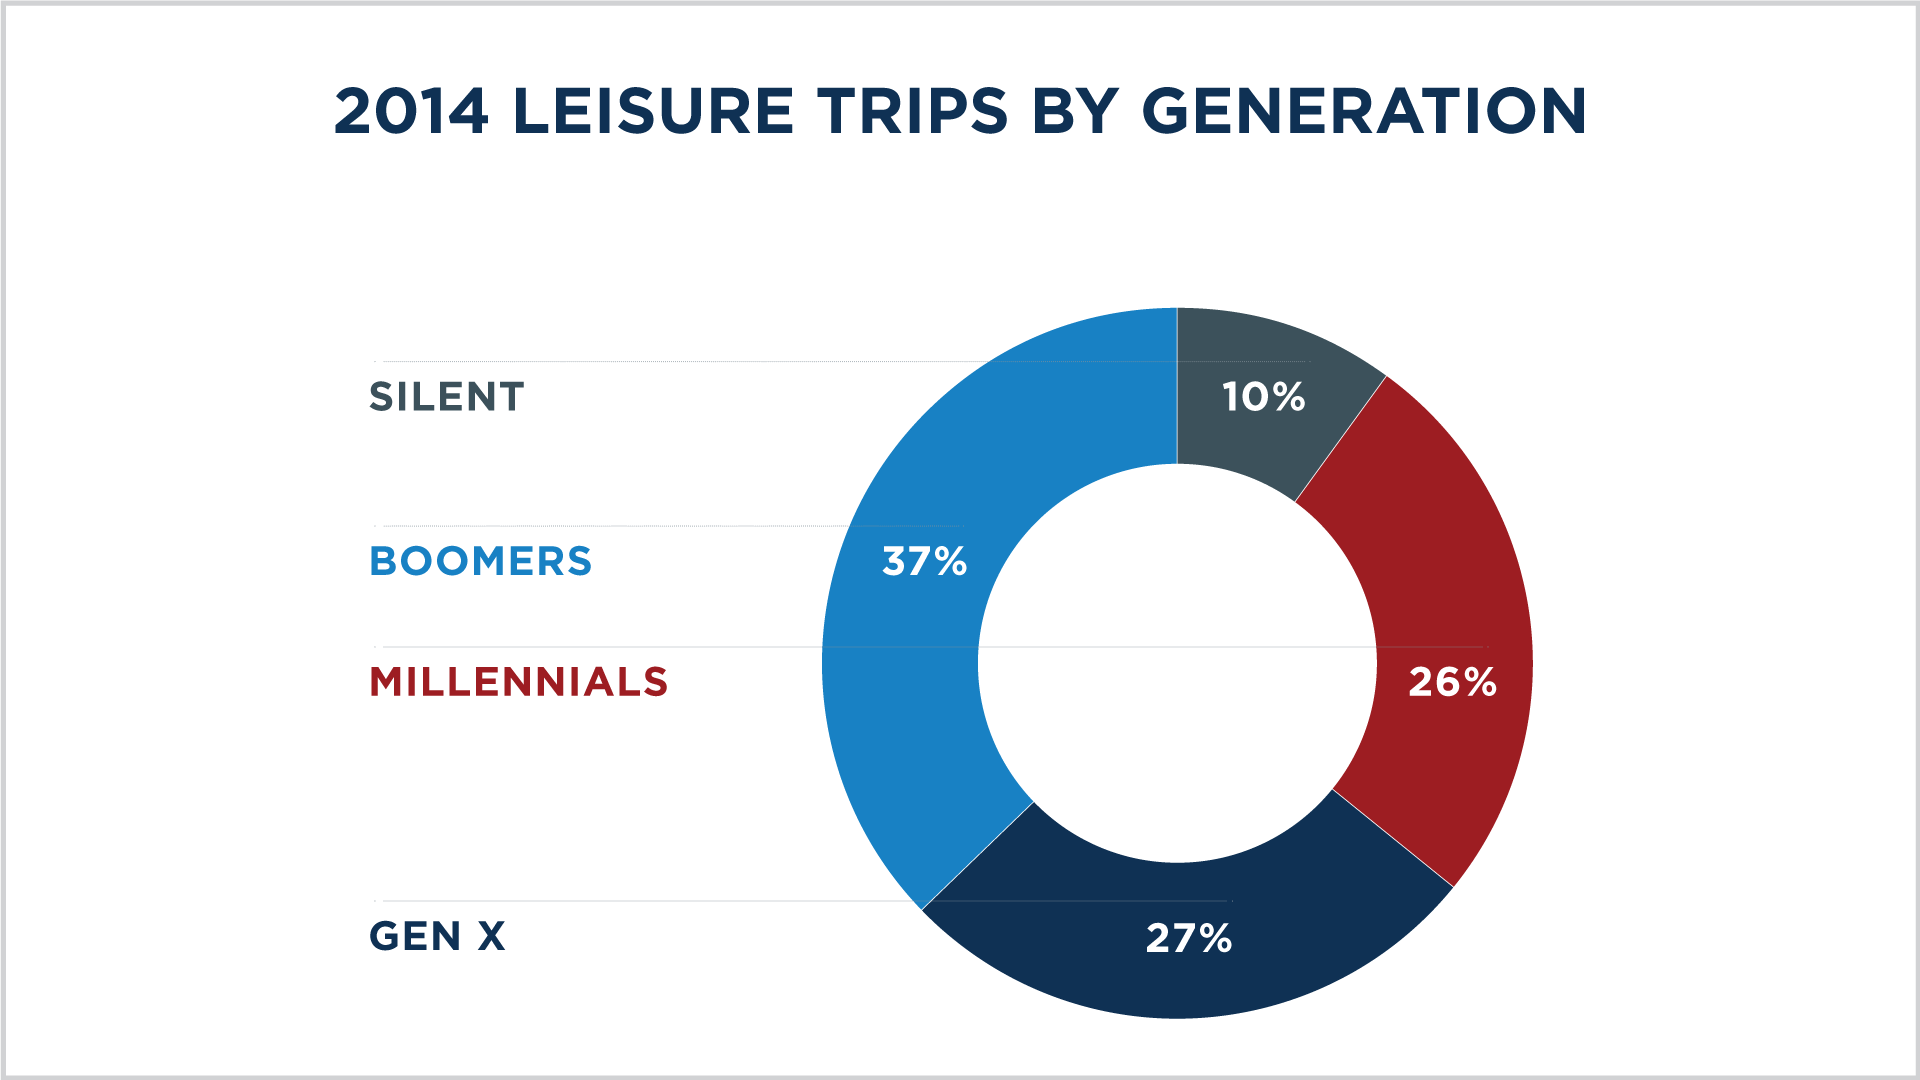 Changing Demographics: Current Trends That Drive American Travel 2015 Leisure by Generations Image